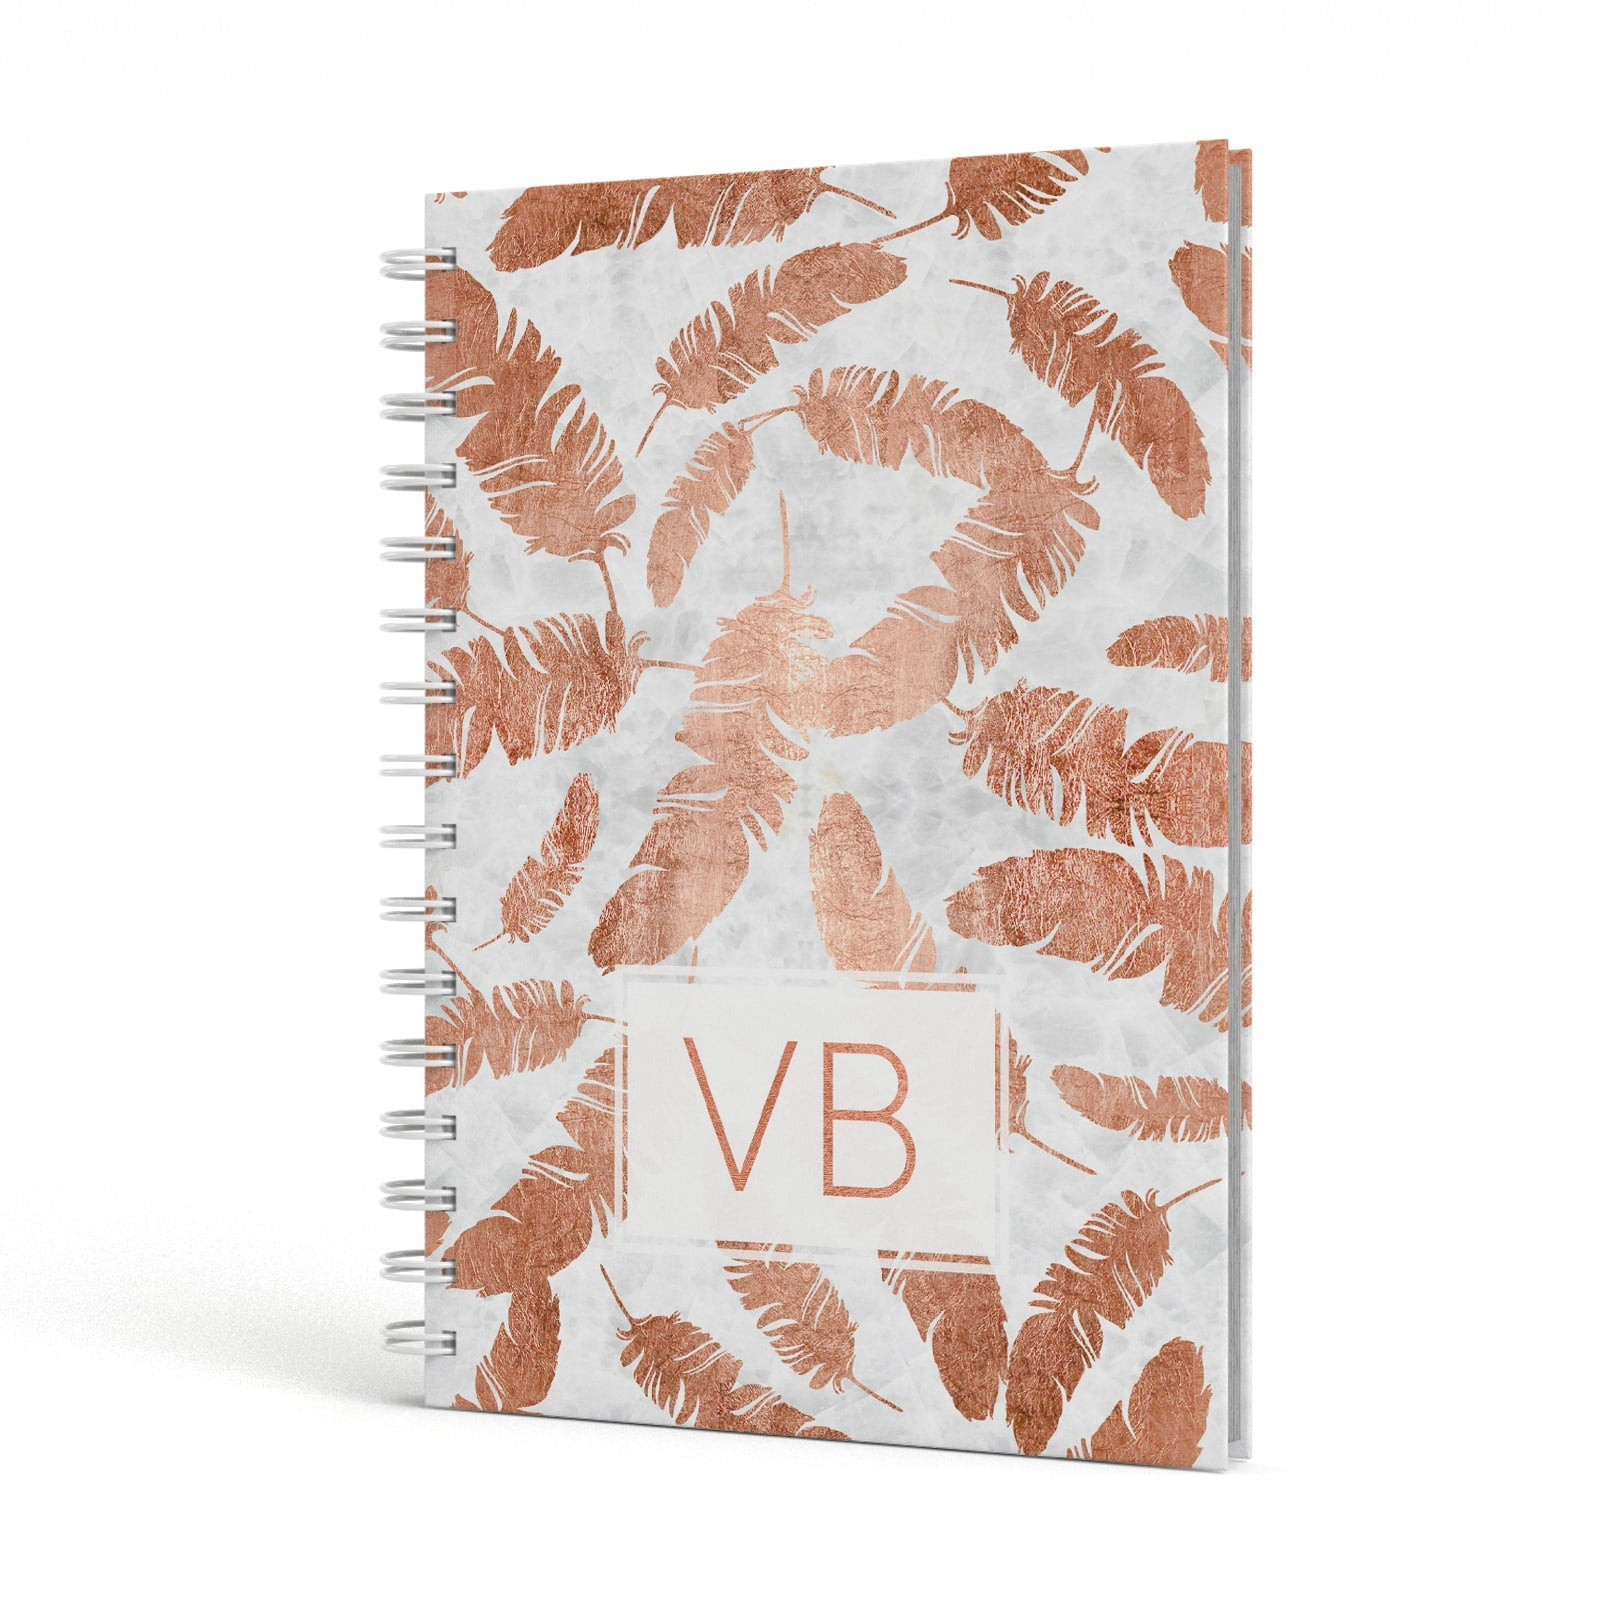 Personalised Leaf Marble Initials A5 Hardcover Notebook Side View